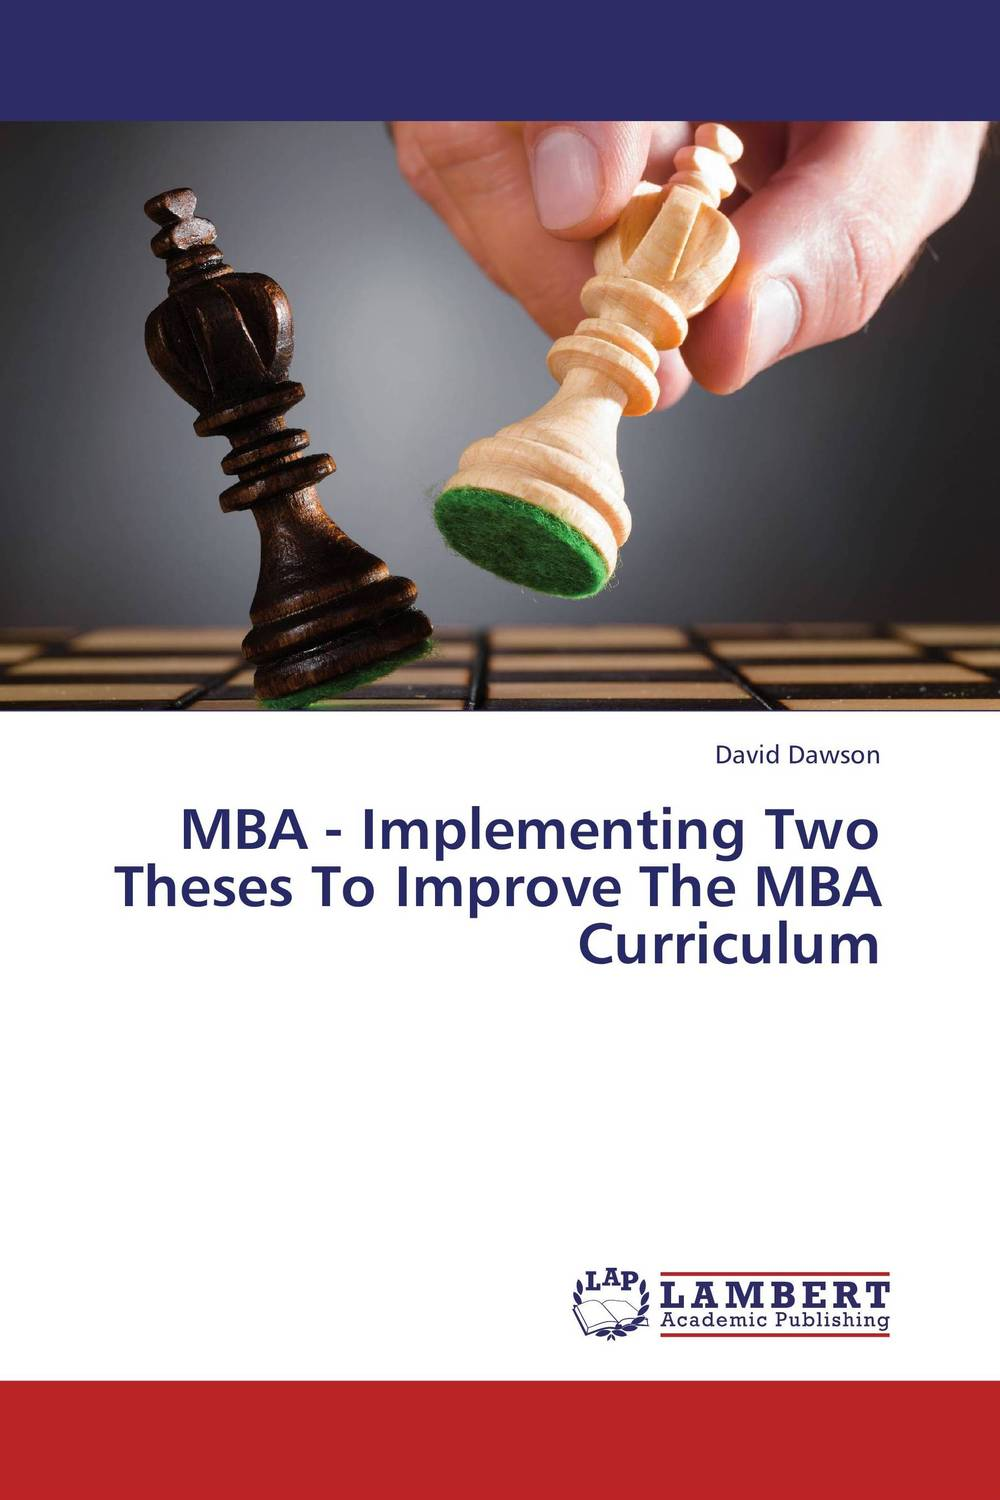 MBA - Implementing Two Theses To Improve The MBA Curriculum